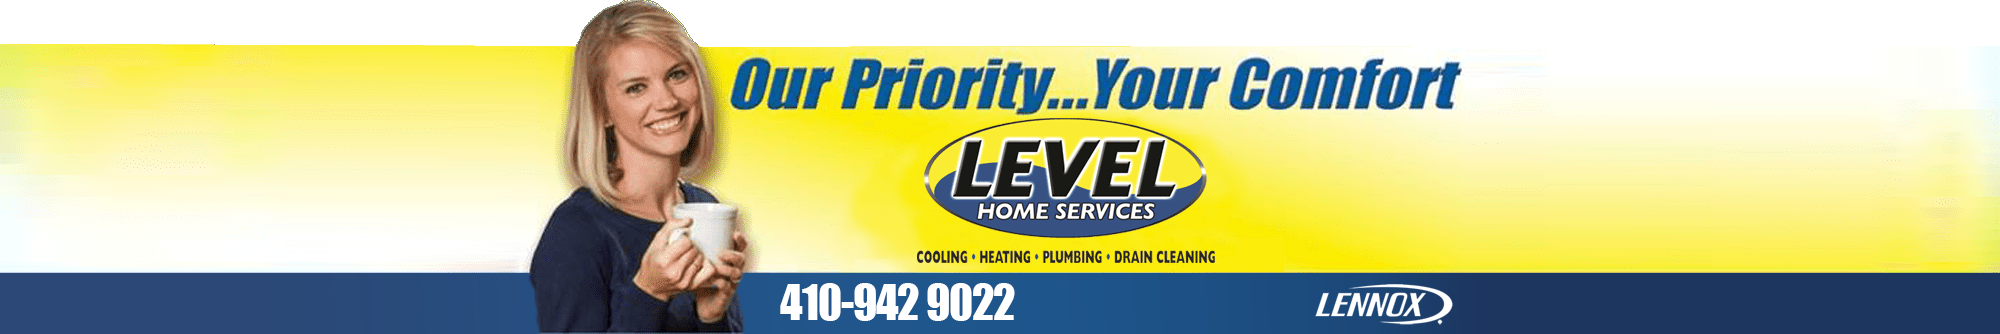 Allow LEVEL HOME SERVICES to repair your Heater in Bel Air MD